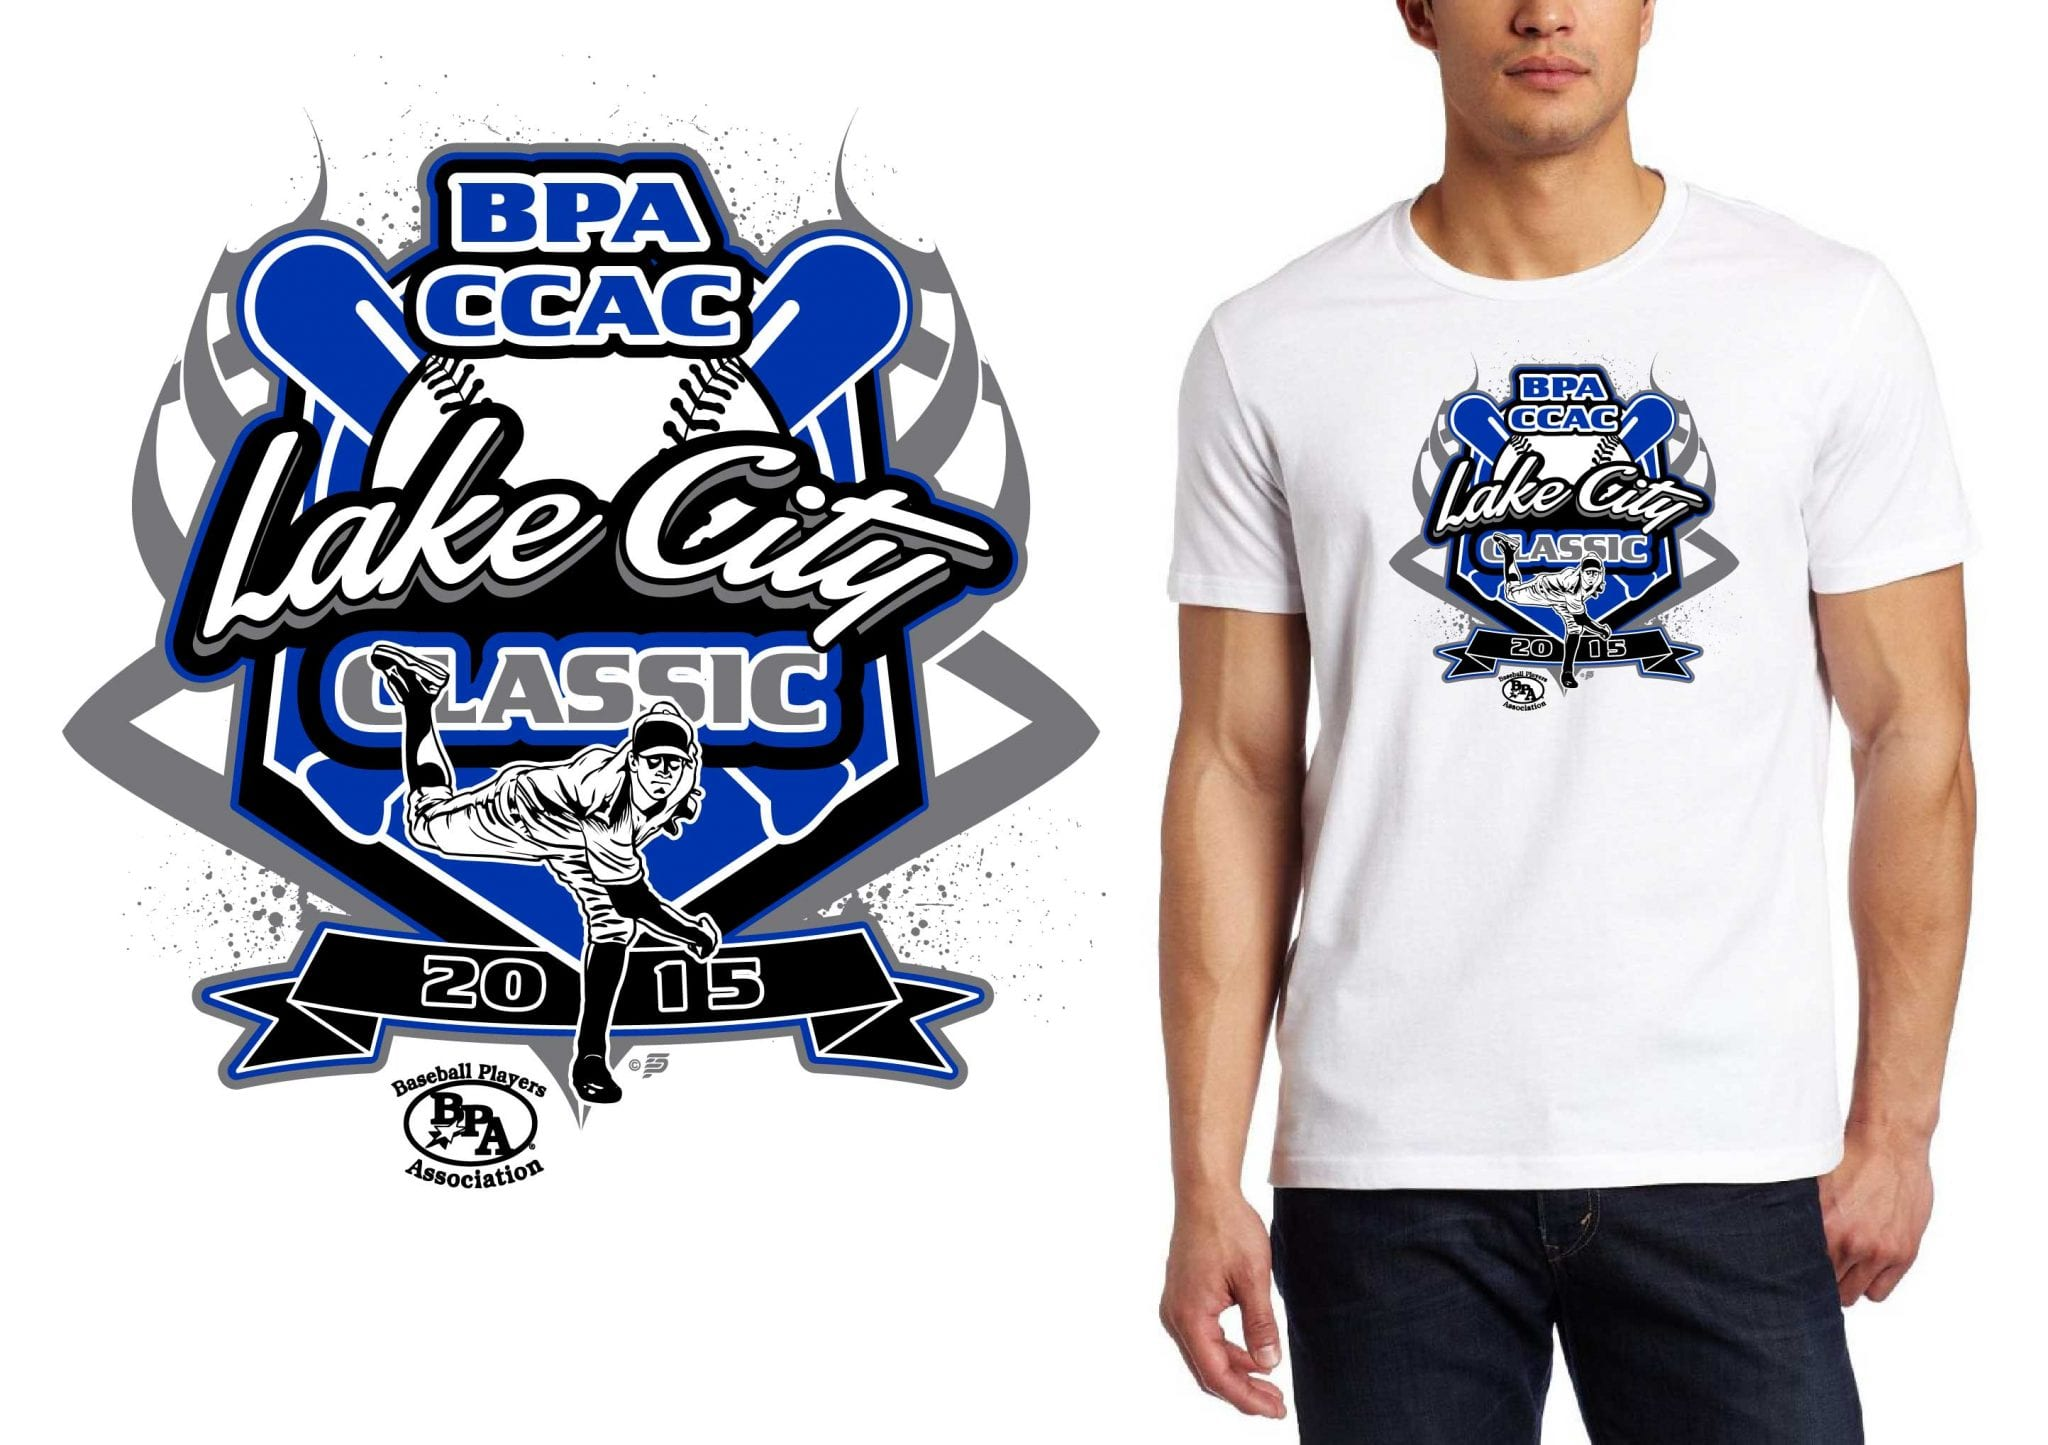 ccac lake city classic professional baseball logo design for tshirt